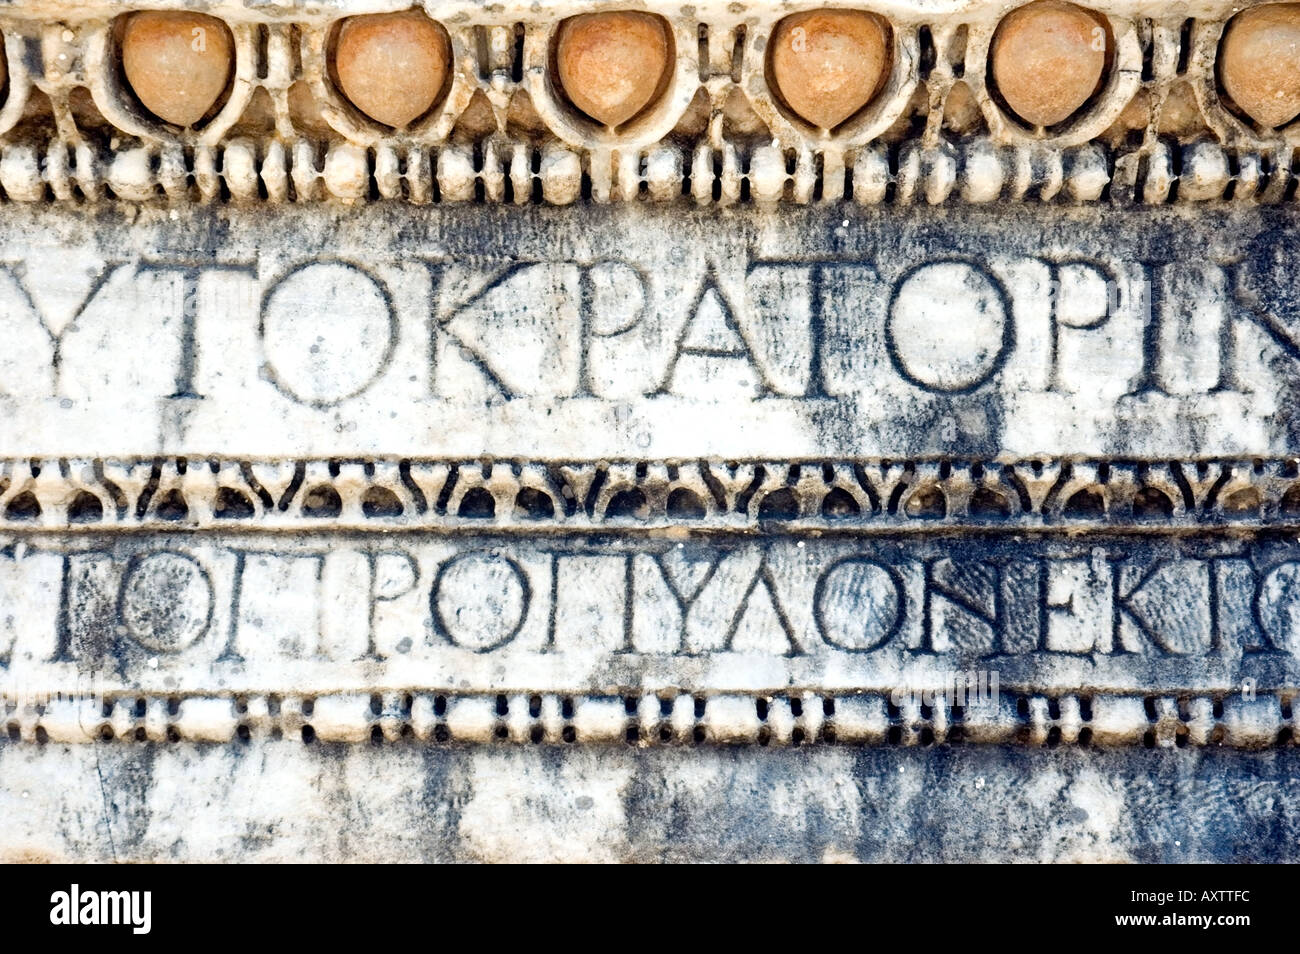 An intricately carved stone frieze depicting Greek writing and script design, in the city of Ephesus, Turkey. DSC_6701 - Stock Image